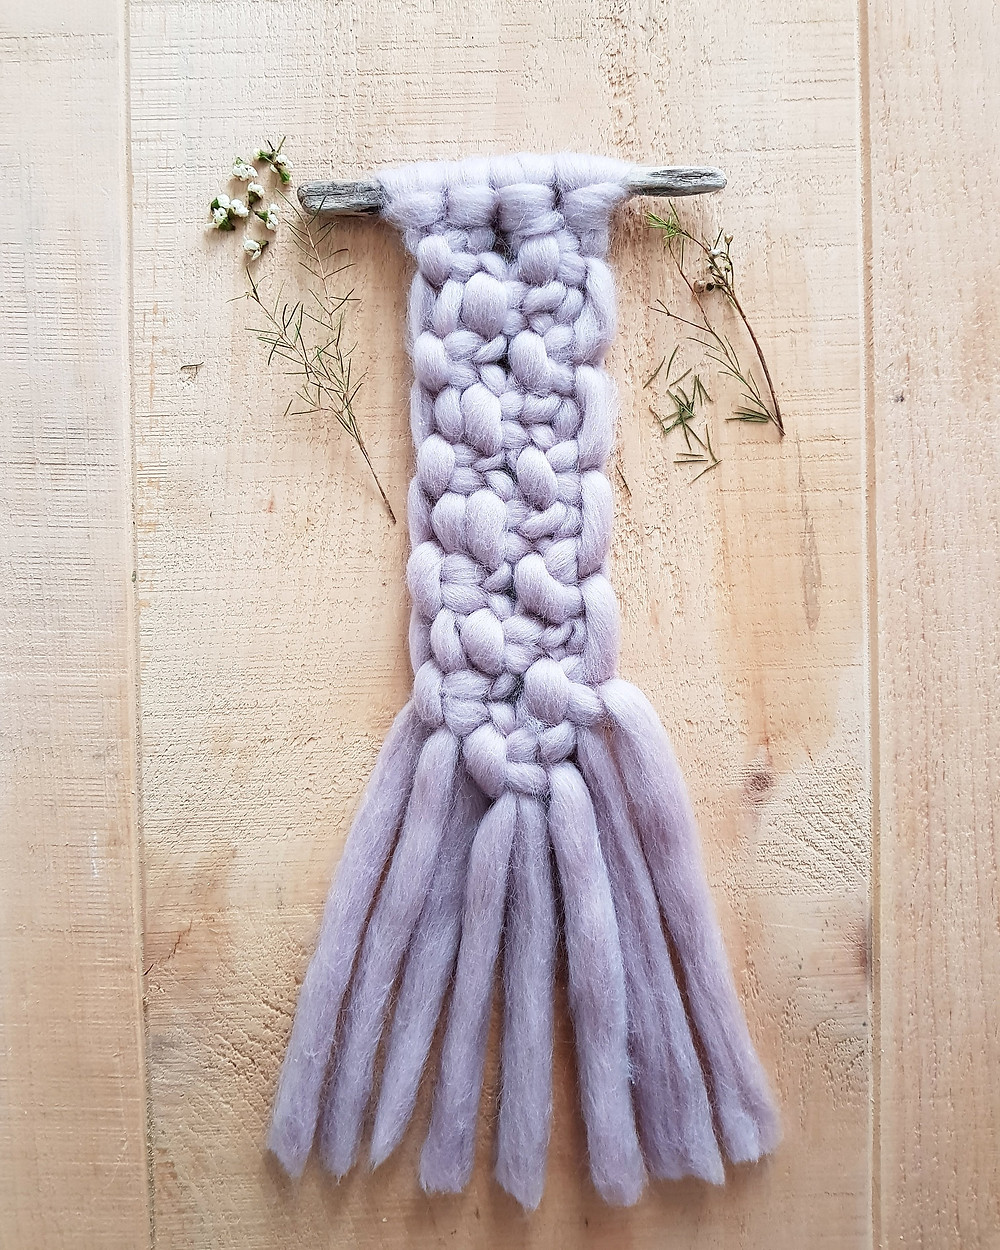 Purple macrame wall hanging made from wool on drift wood